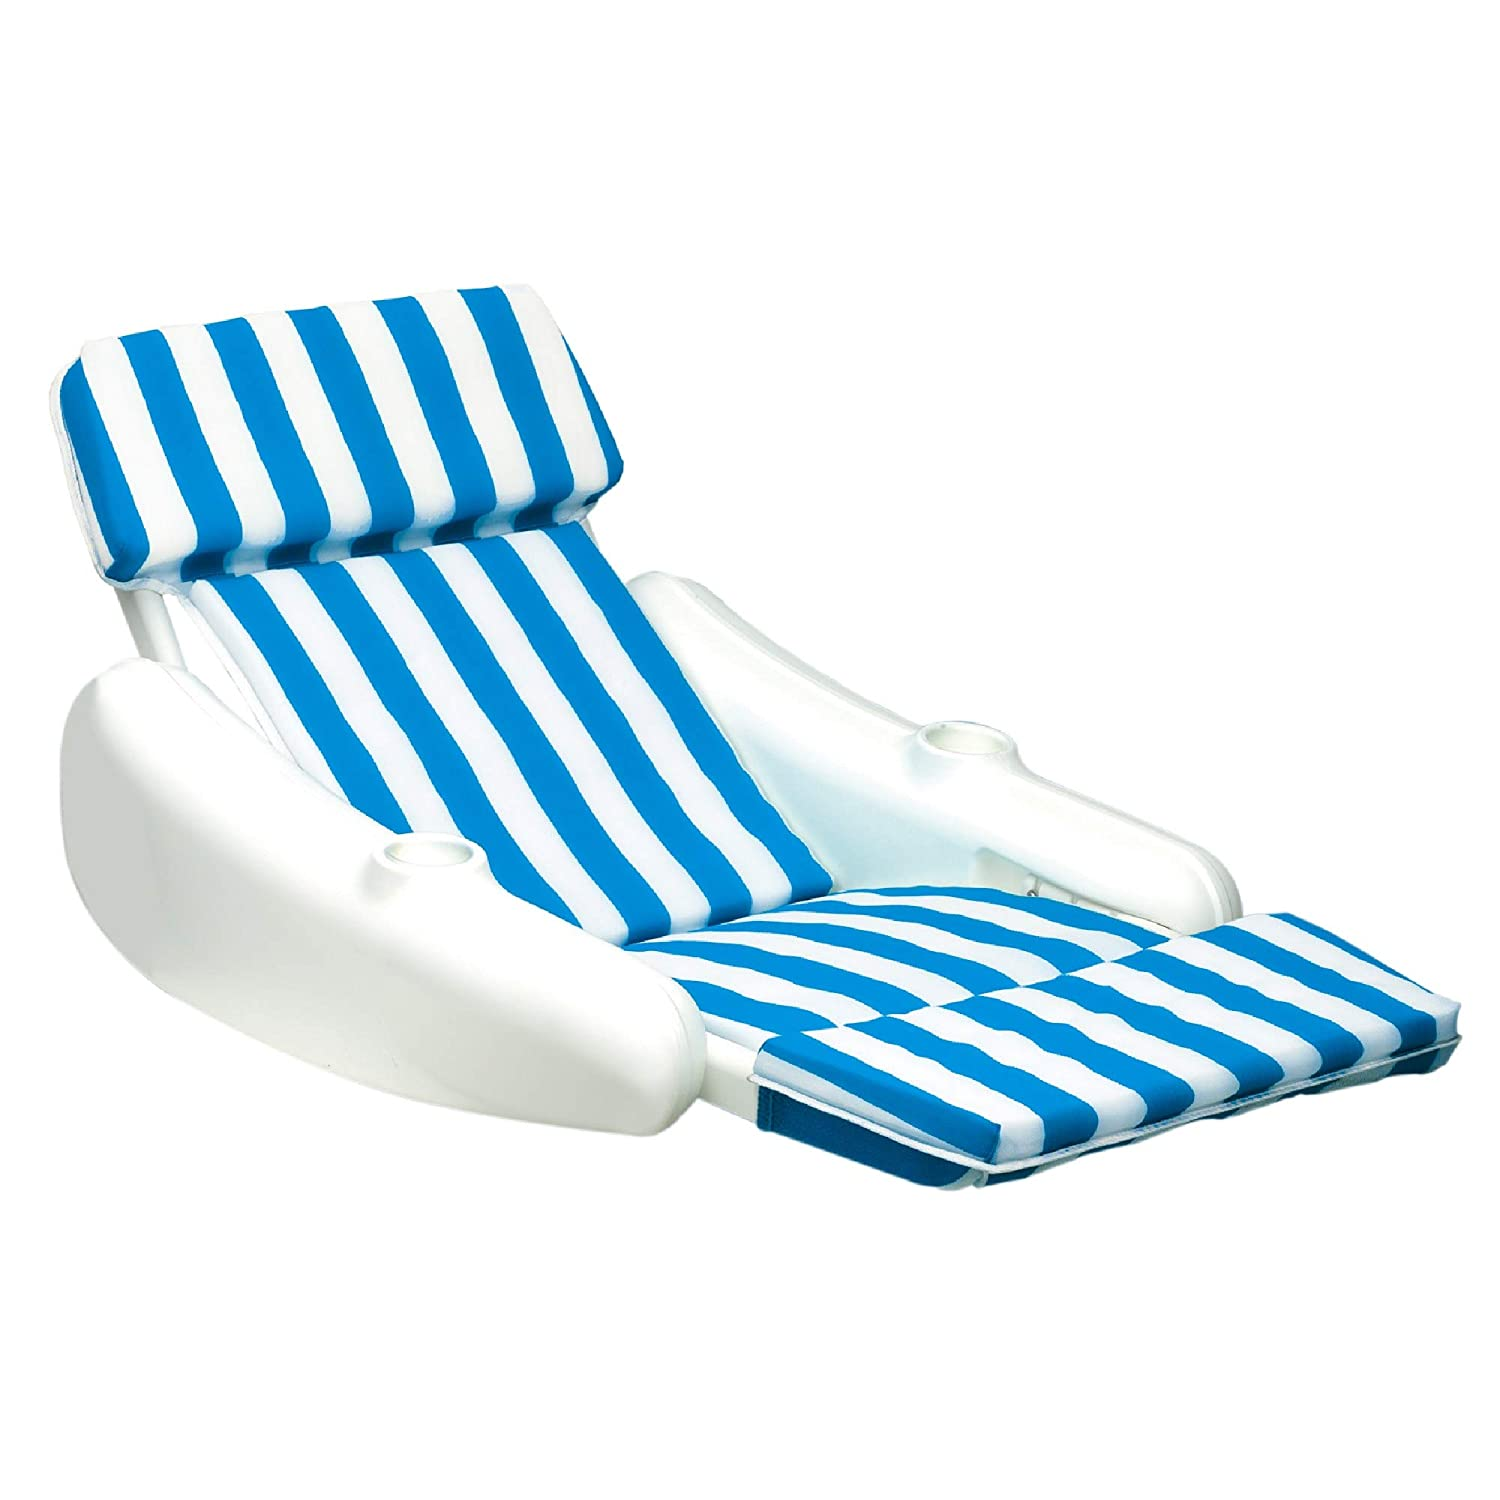 Strange Amazon Com Sunchaser Blue And White Striped Swimming Pool Cjindustries Chair Design For Home Cjindustriesco